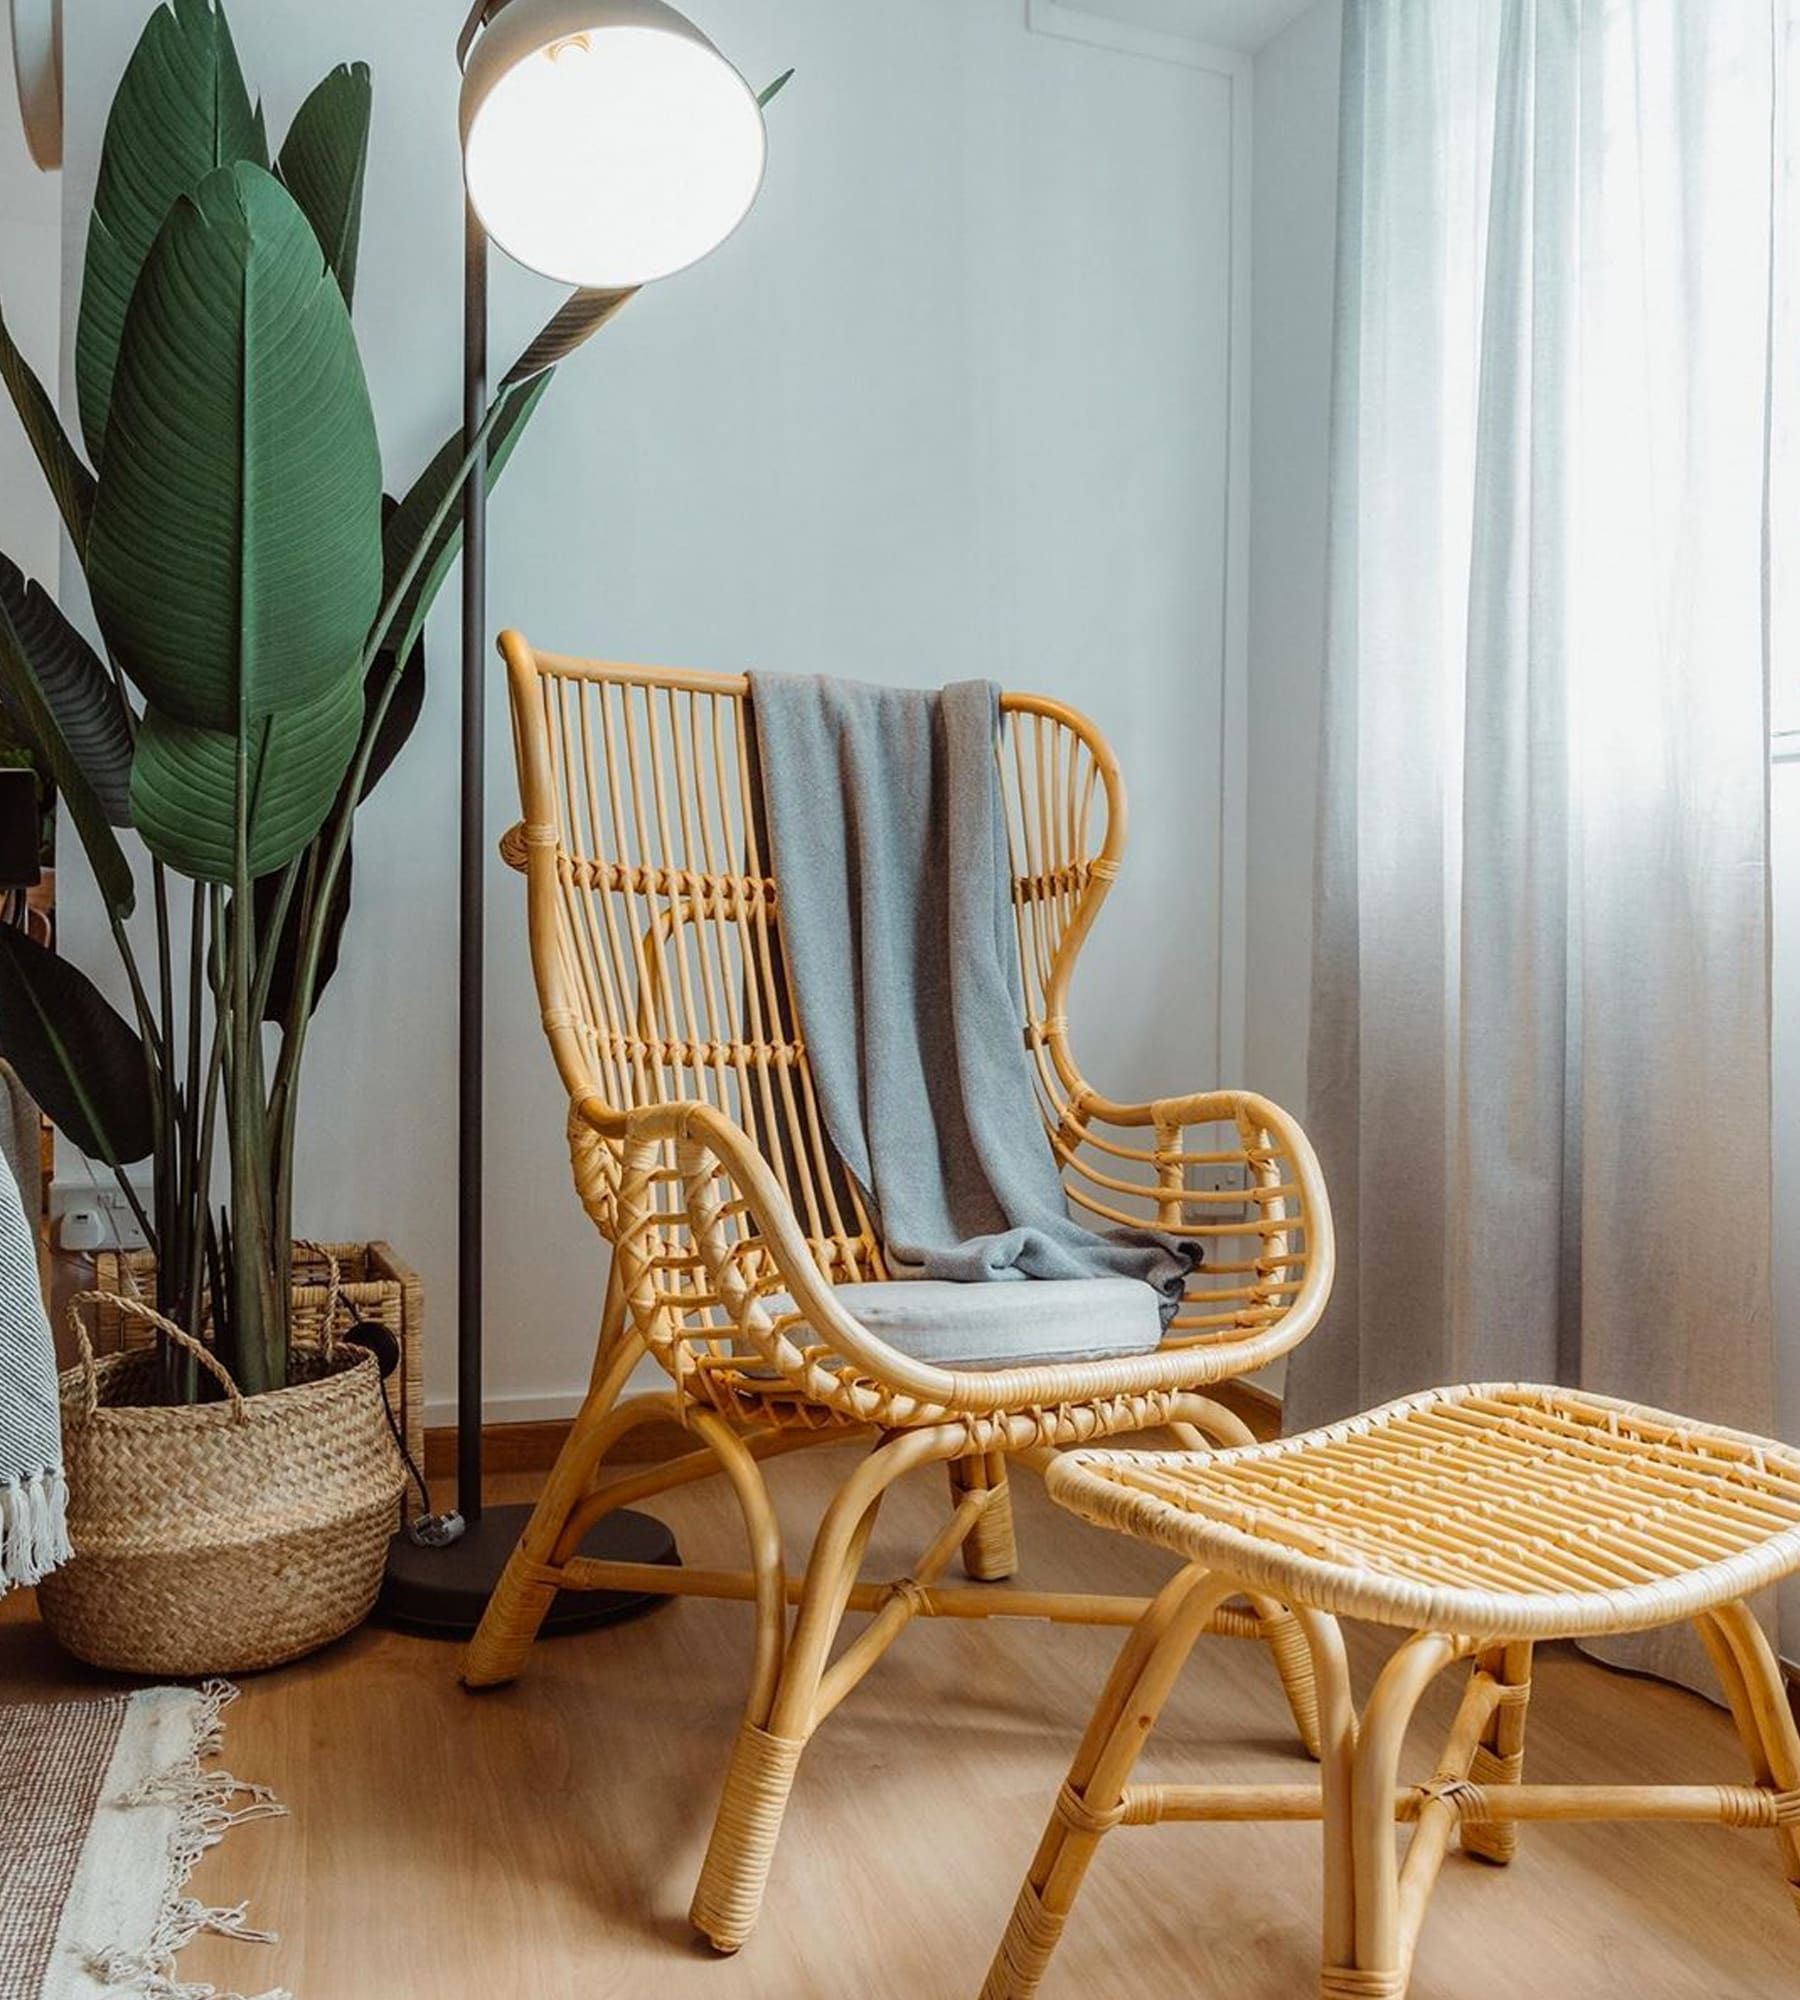 rattan armchair and stool in resort-style home